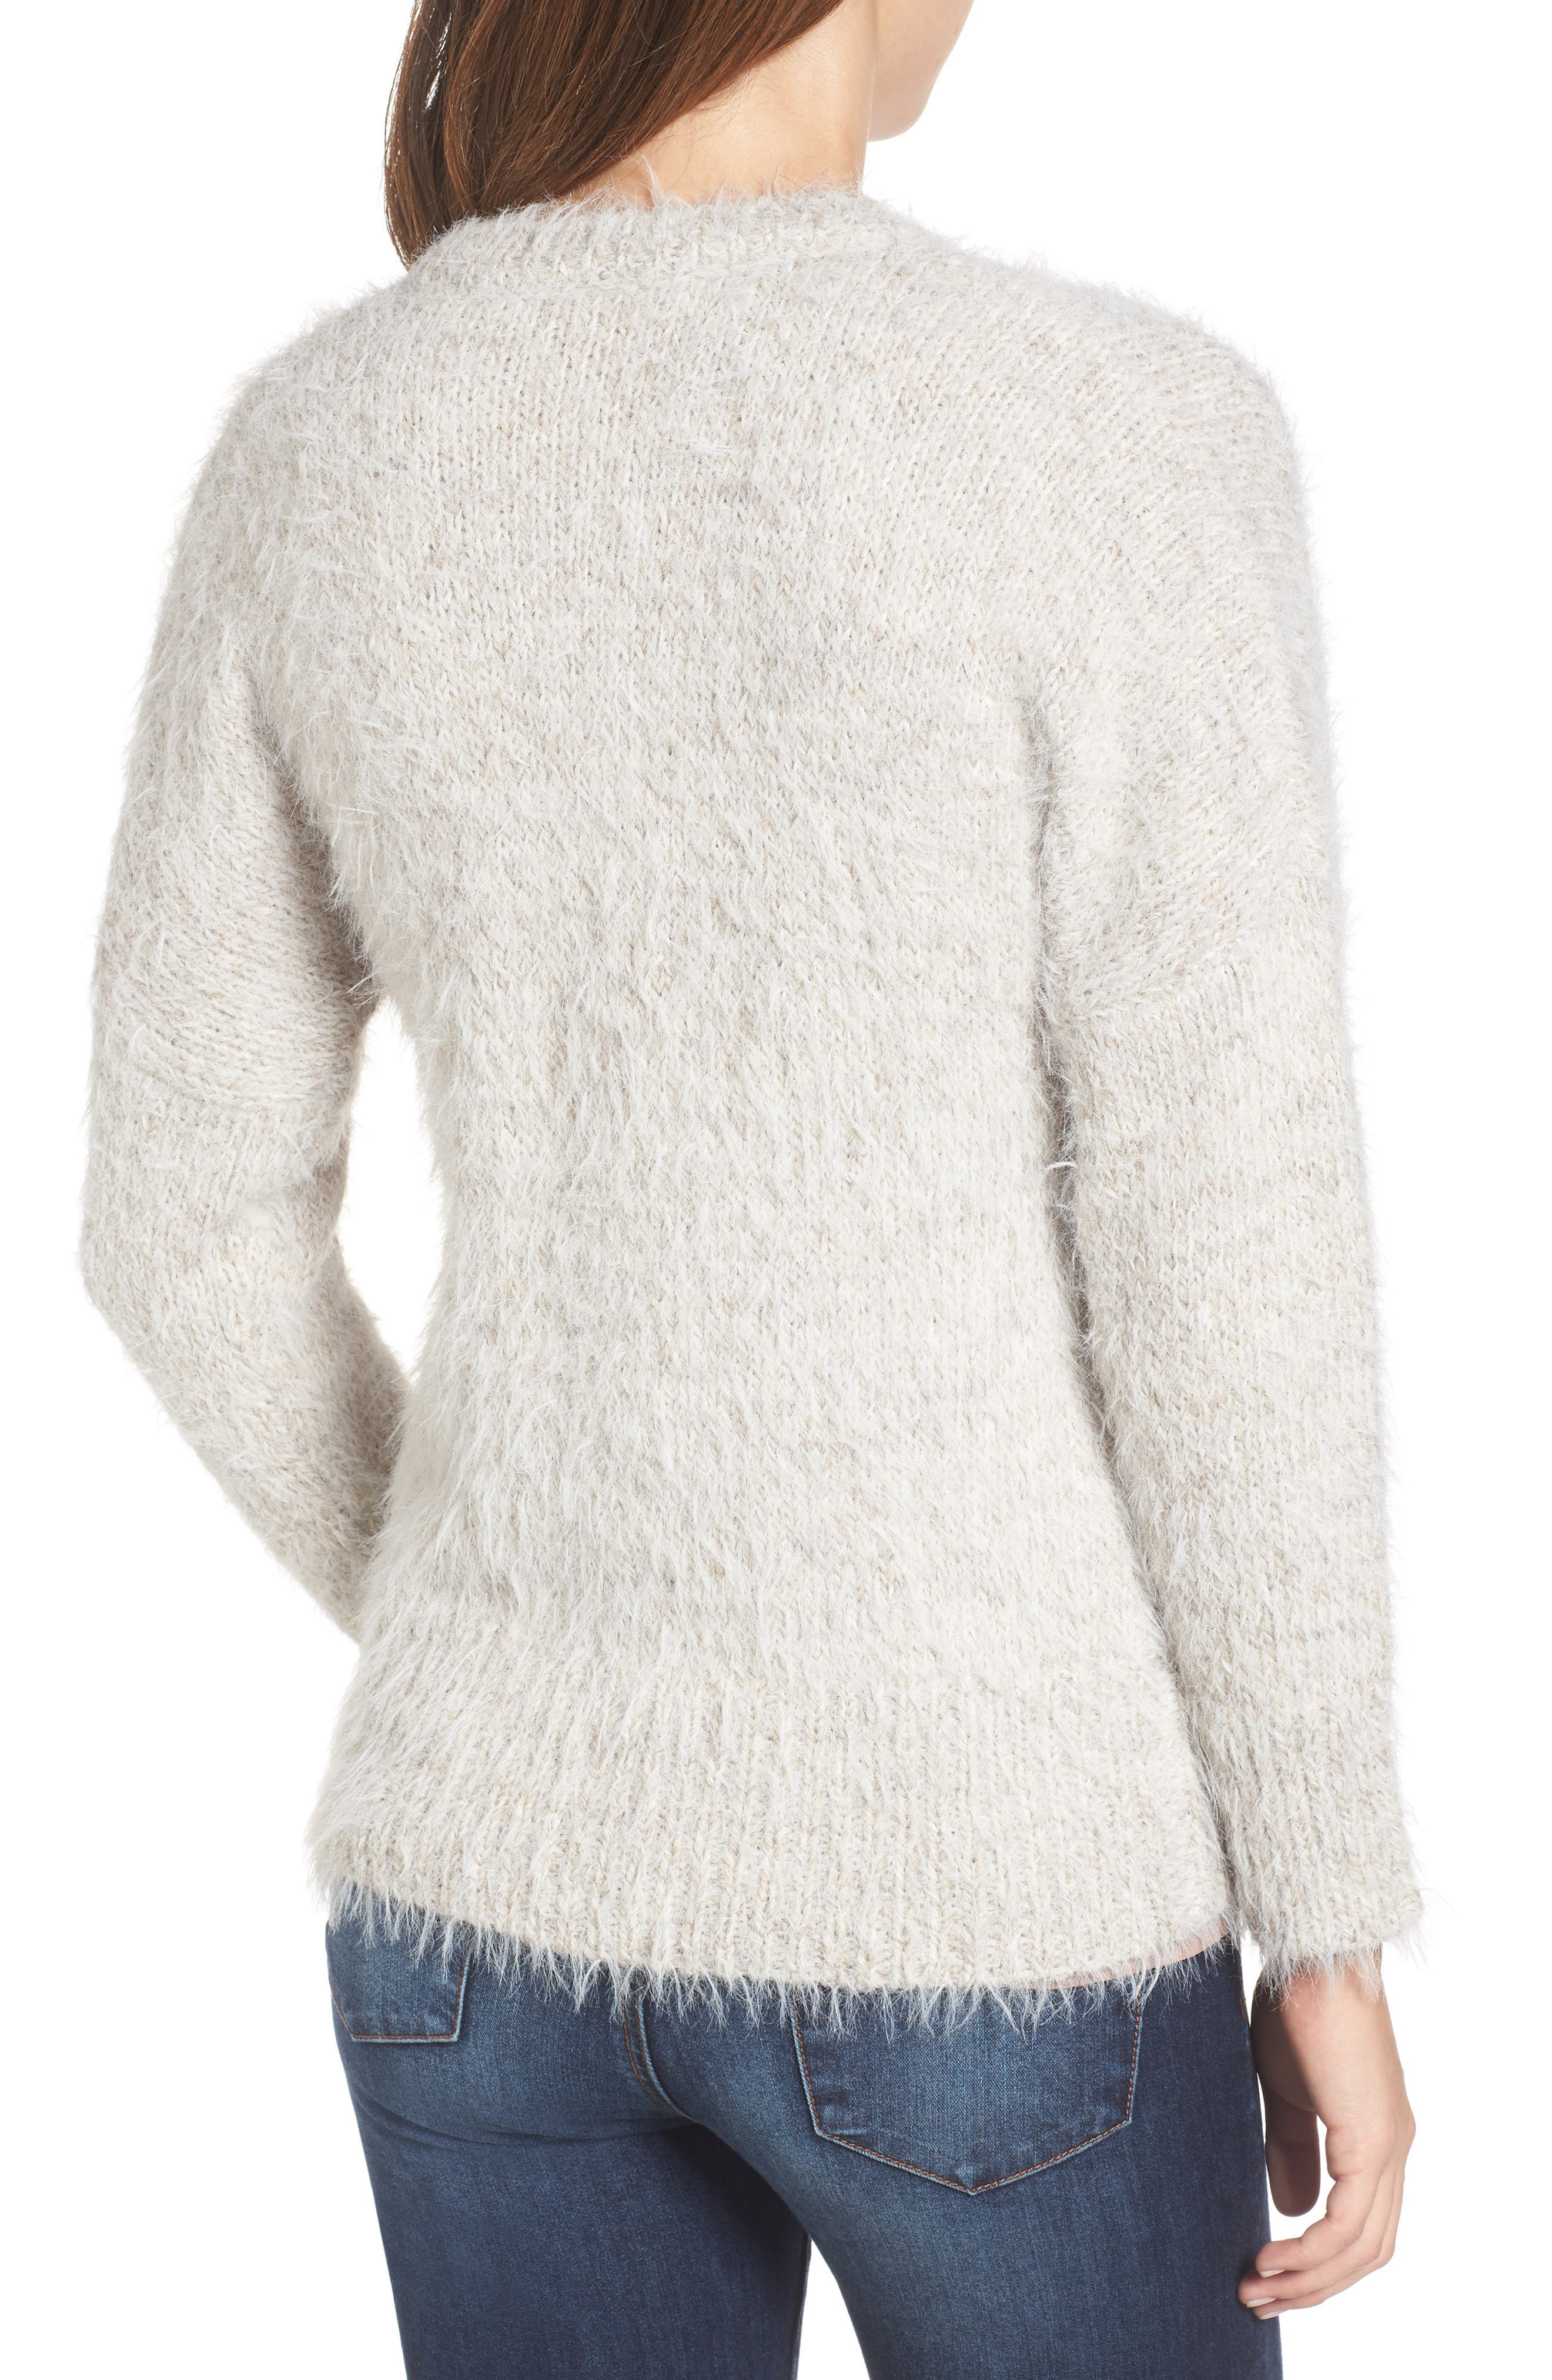 Fuzzy Cardigan,                             Alternate thumbnail 2, color,                             Grey Chateau